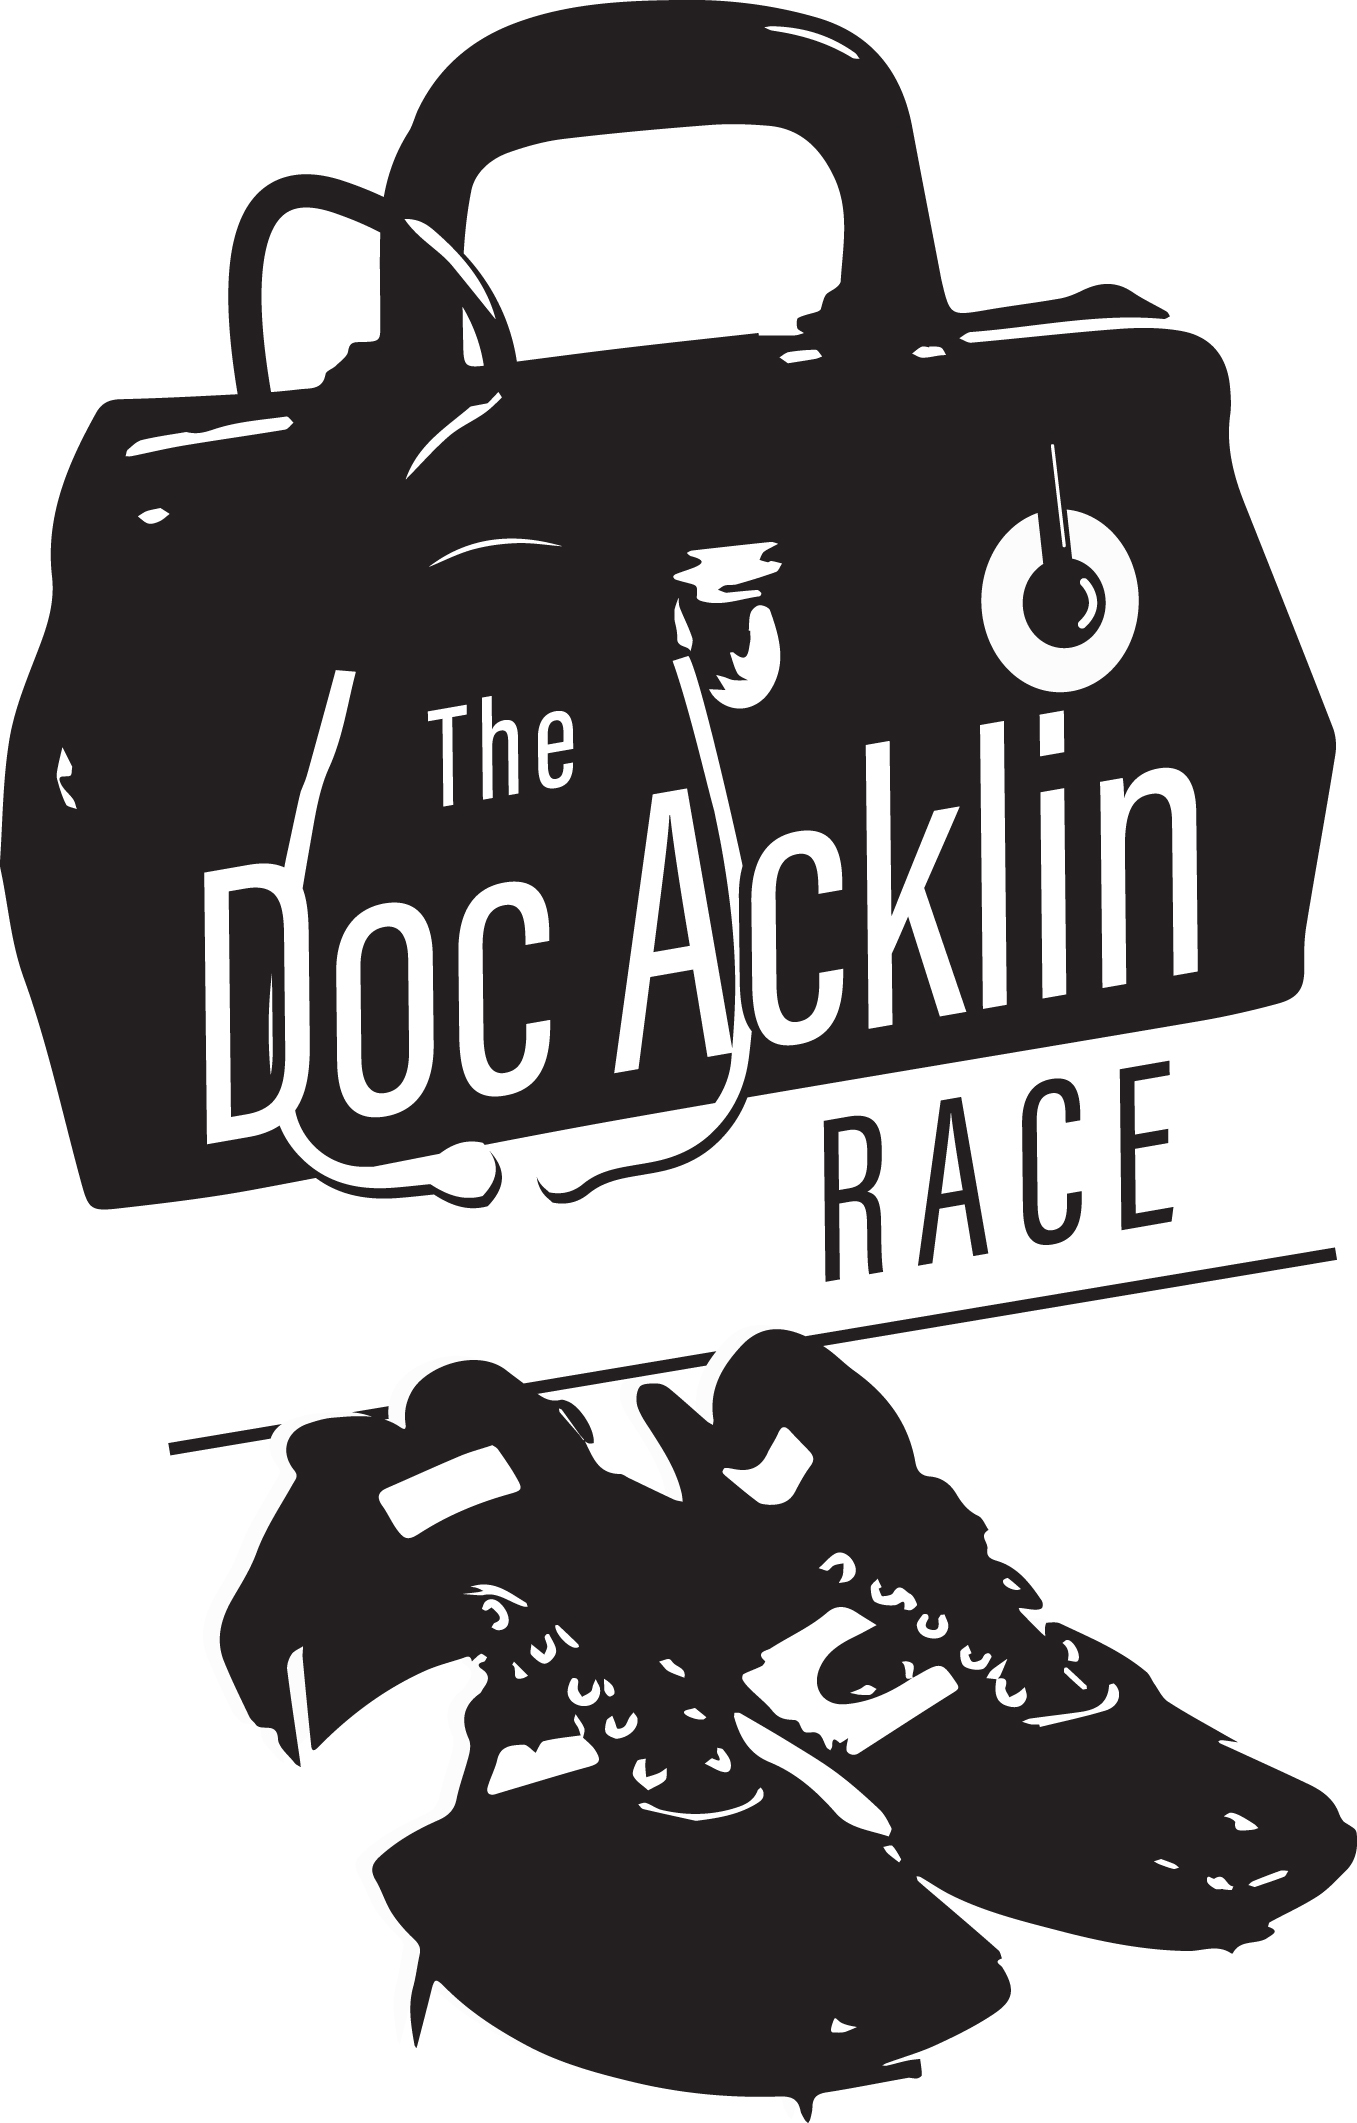 PCH/FMC Accepting Registration for Doc Acklin Race